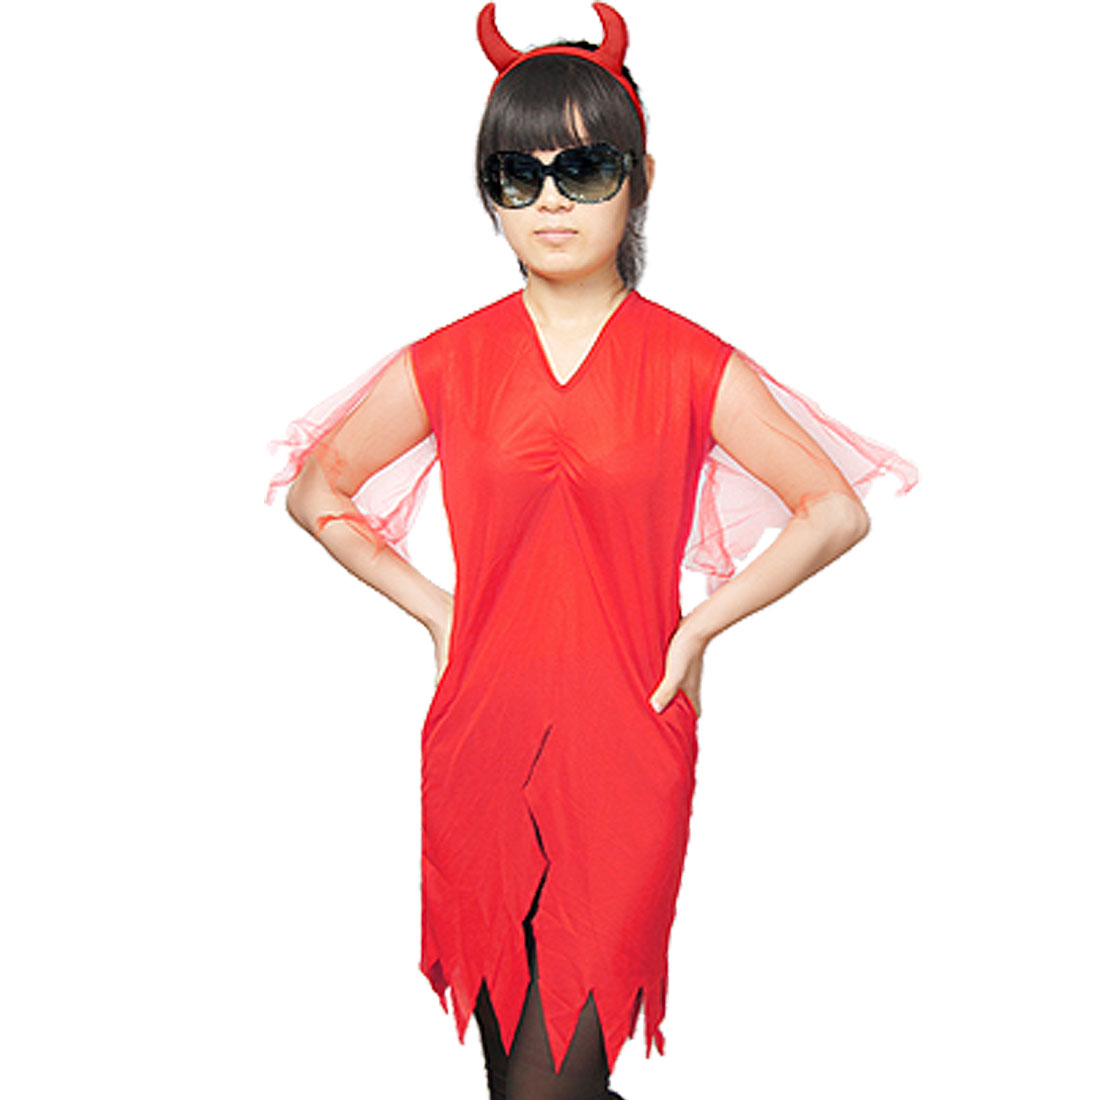 Handkerchief Hem V Neck Red Devil Halloween Costume for Girls